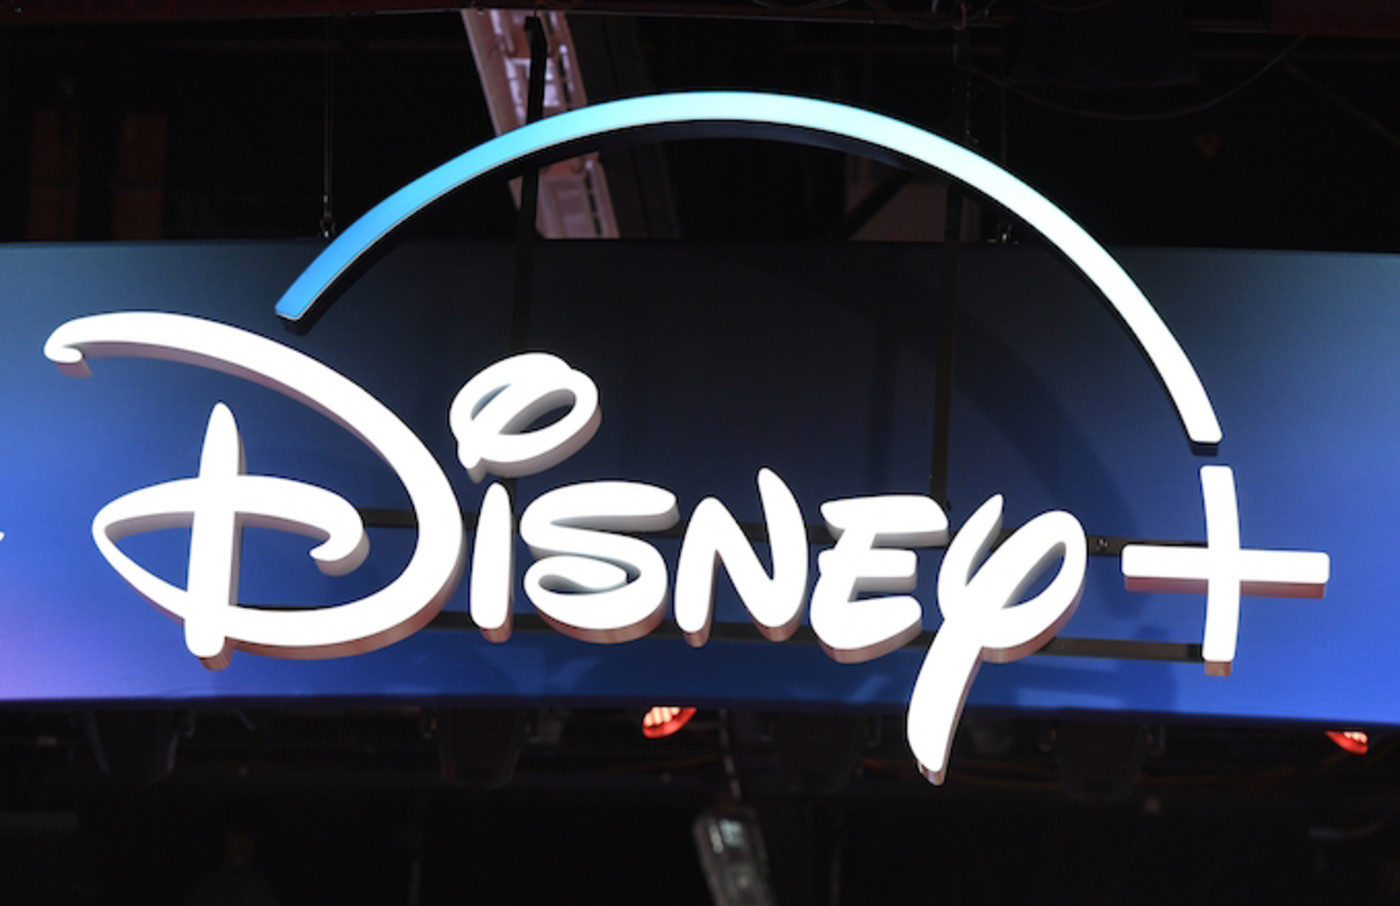 A Disney+ streaming service sign is pictured at the D23 Expo.